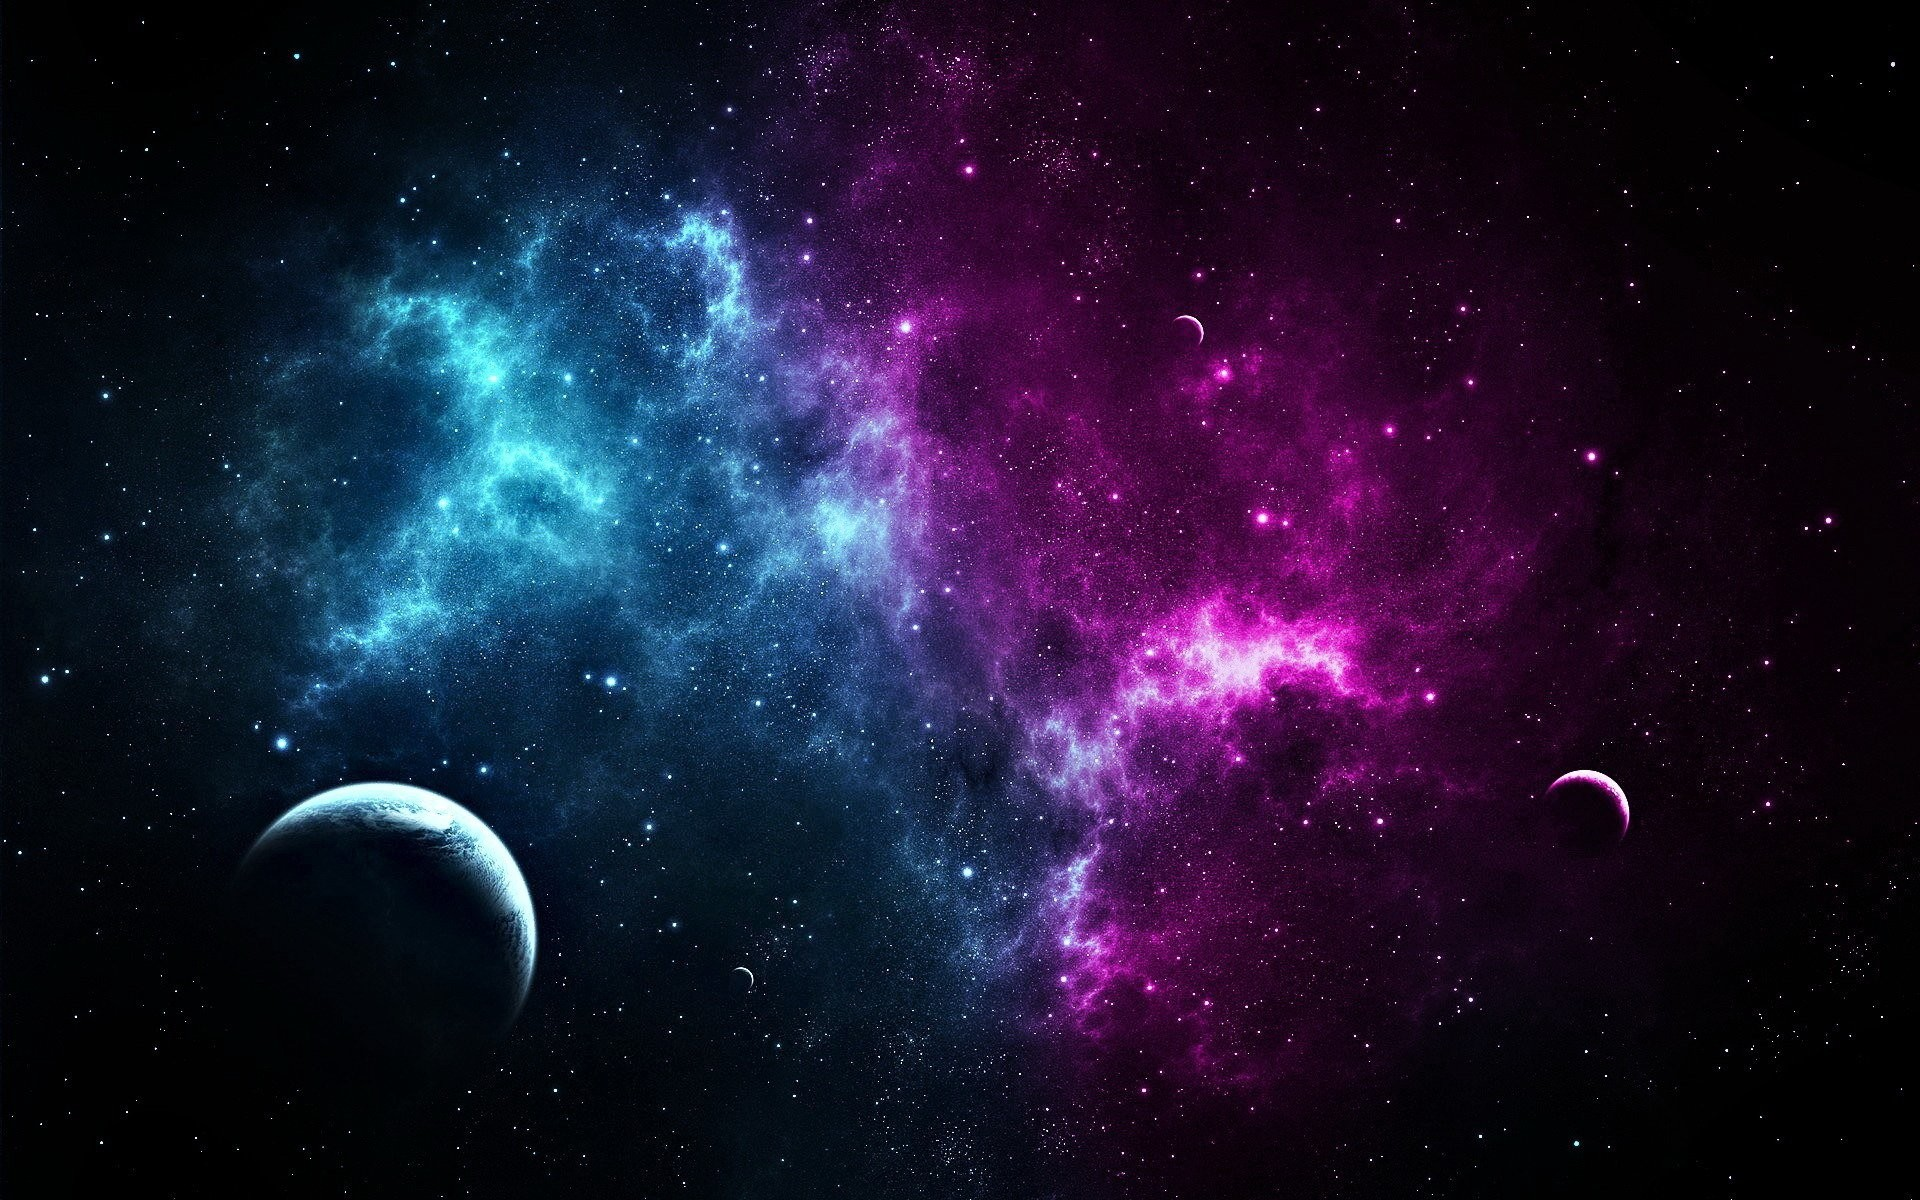 HD Purple Space Wallpaper 1920×1200 Purple Space Wallpapers (36 Wallpapers)    Adorable